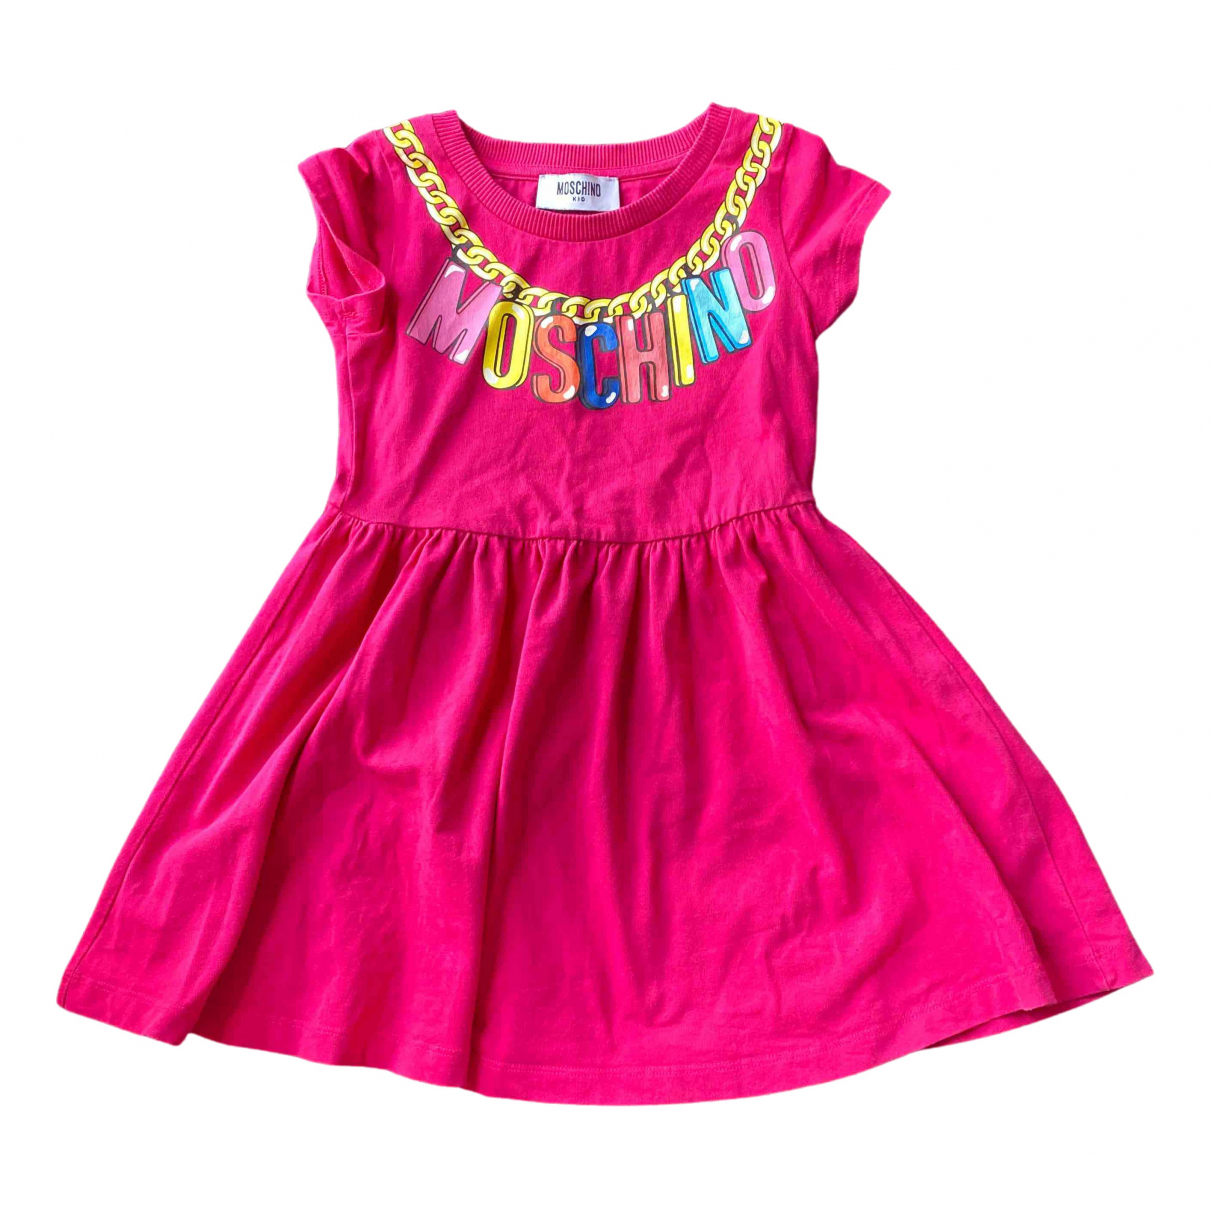 Moschino N Pink Cotton dress for Kids 4 years - up to 102cm FR